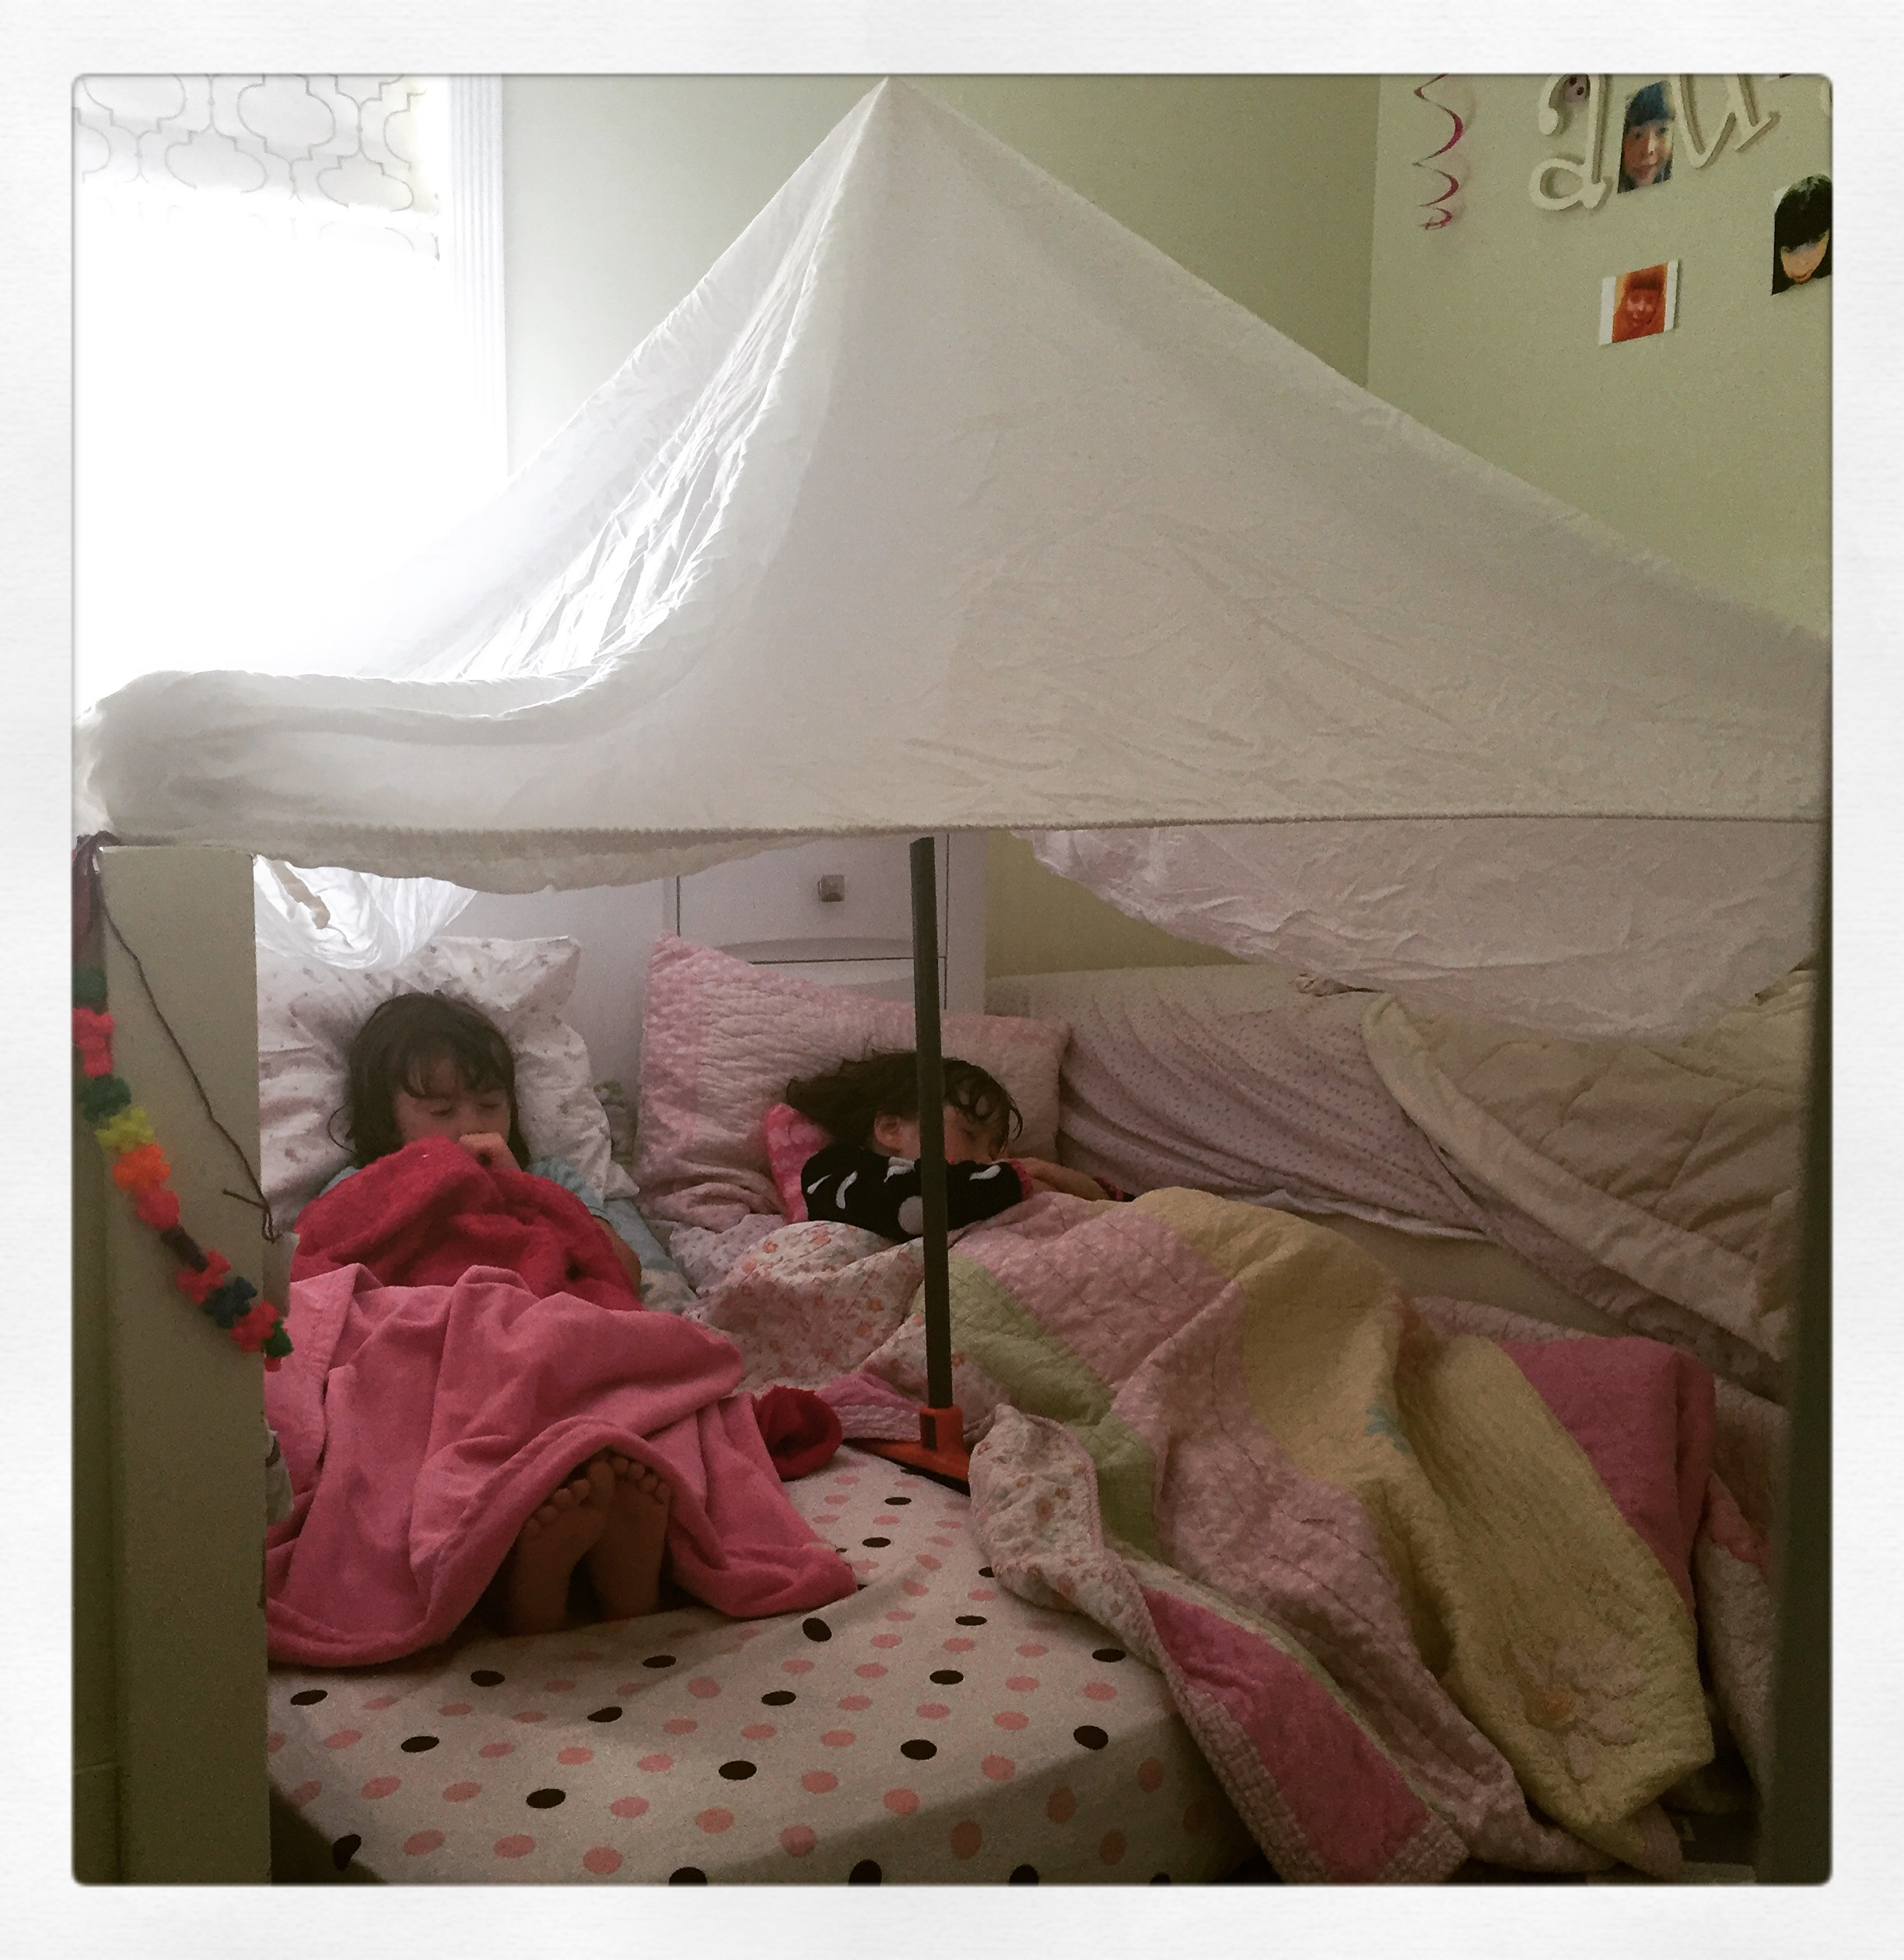 """I call this """"Fort Bed Knobs and Broomsticks"""". A cozy place for an afternoon nap or a great reading nook!"""